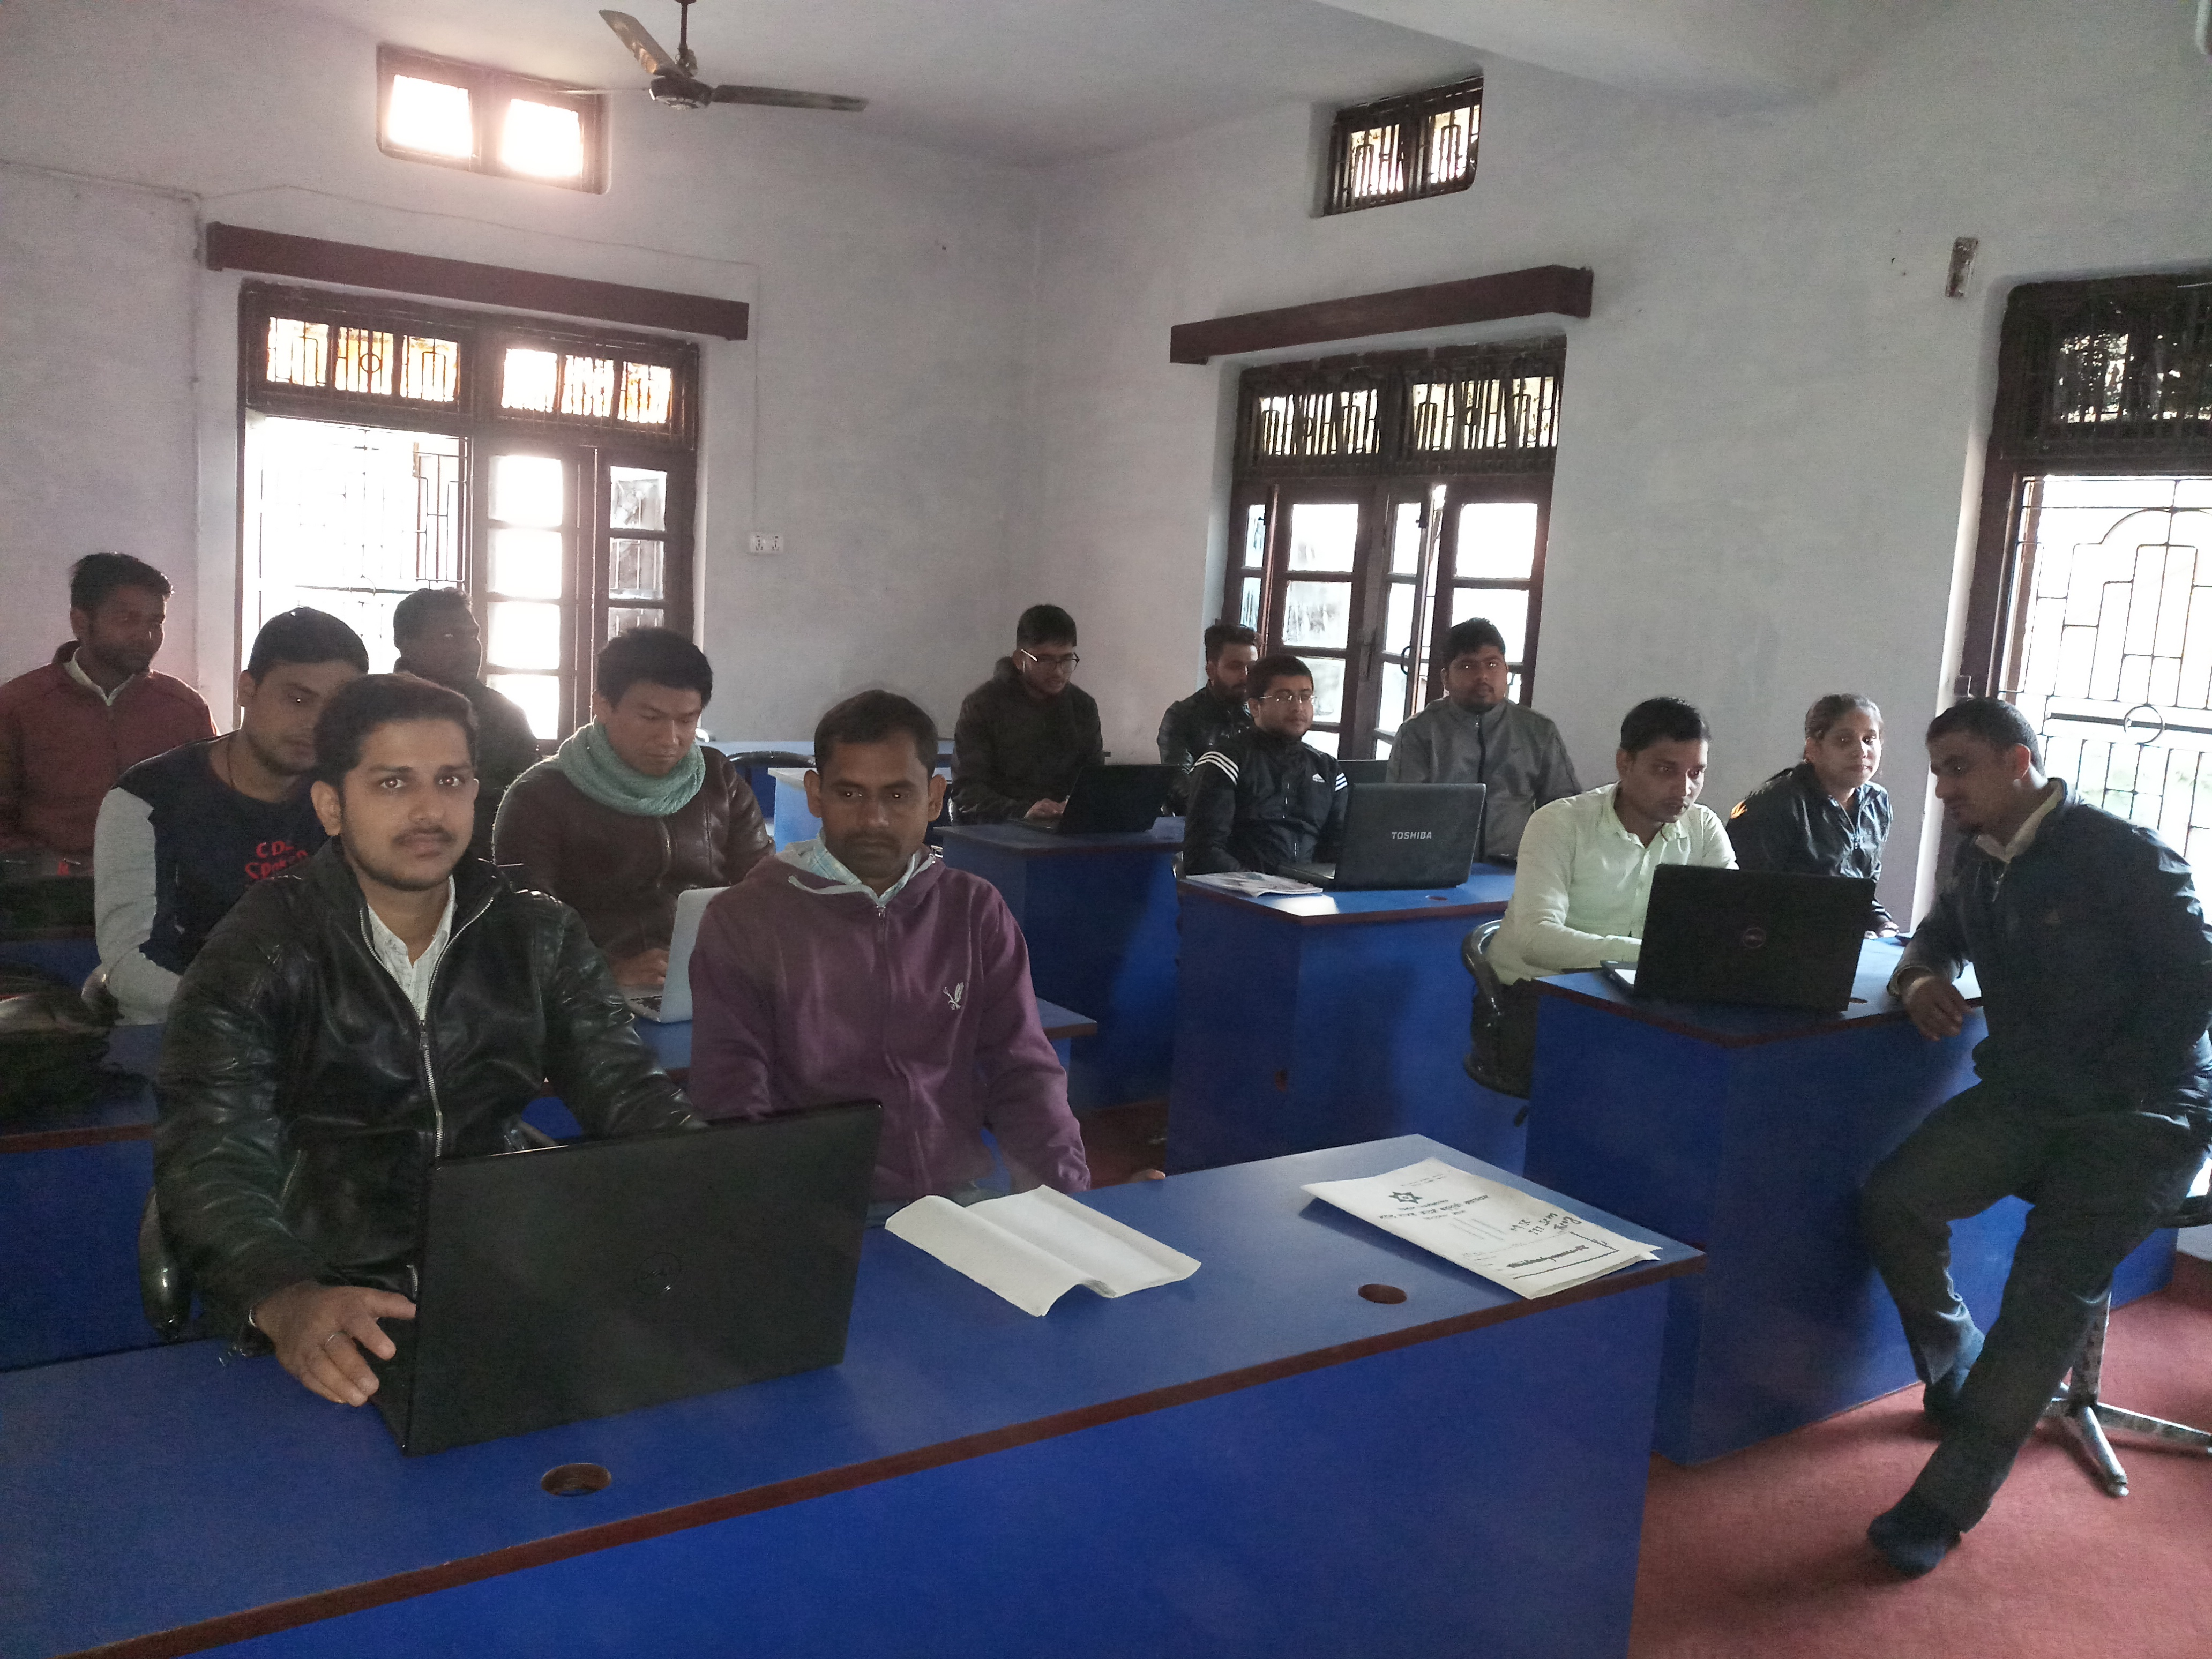 mahendra morang campus Physics (M.Sc. and B.Sc.)